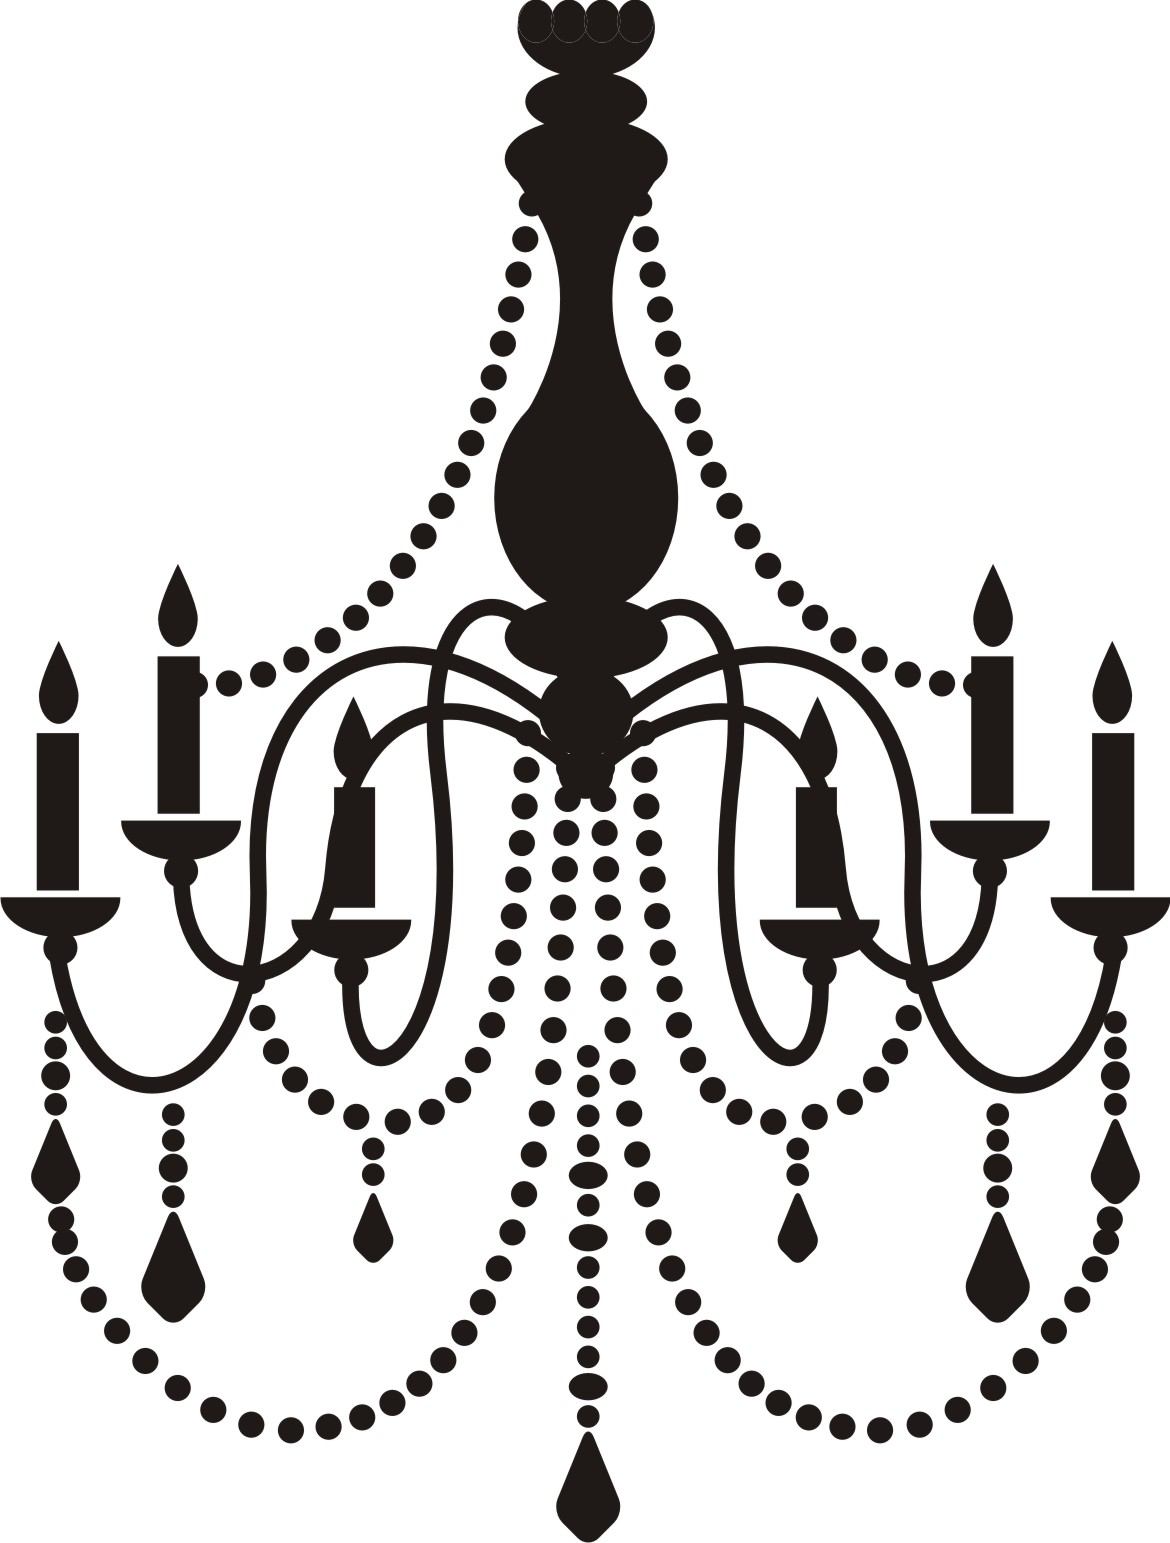 Free cliparts download clip. Chandelier clipart svg transparent download